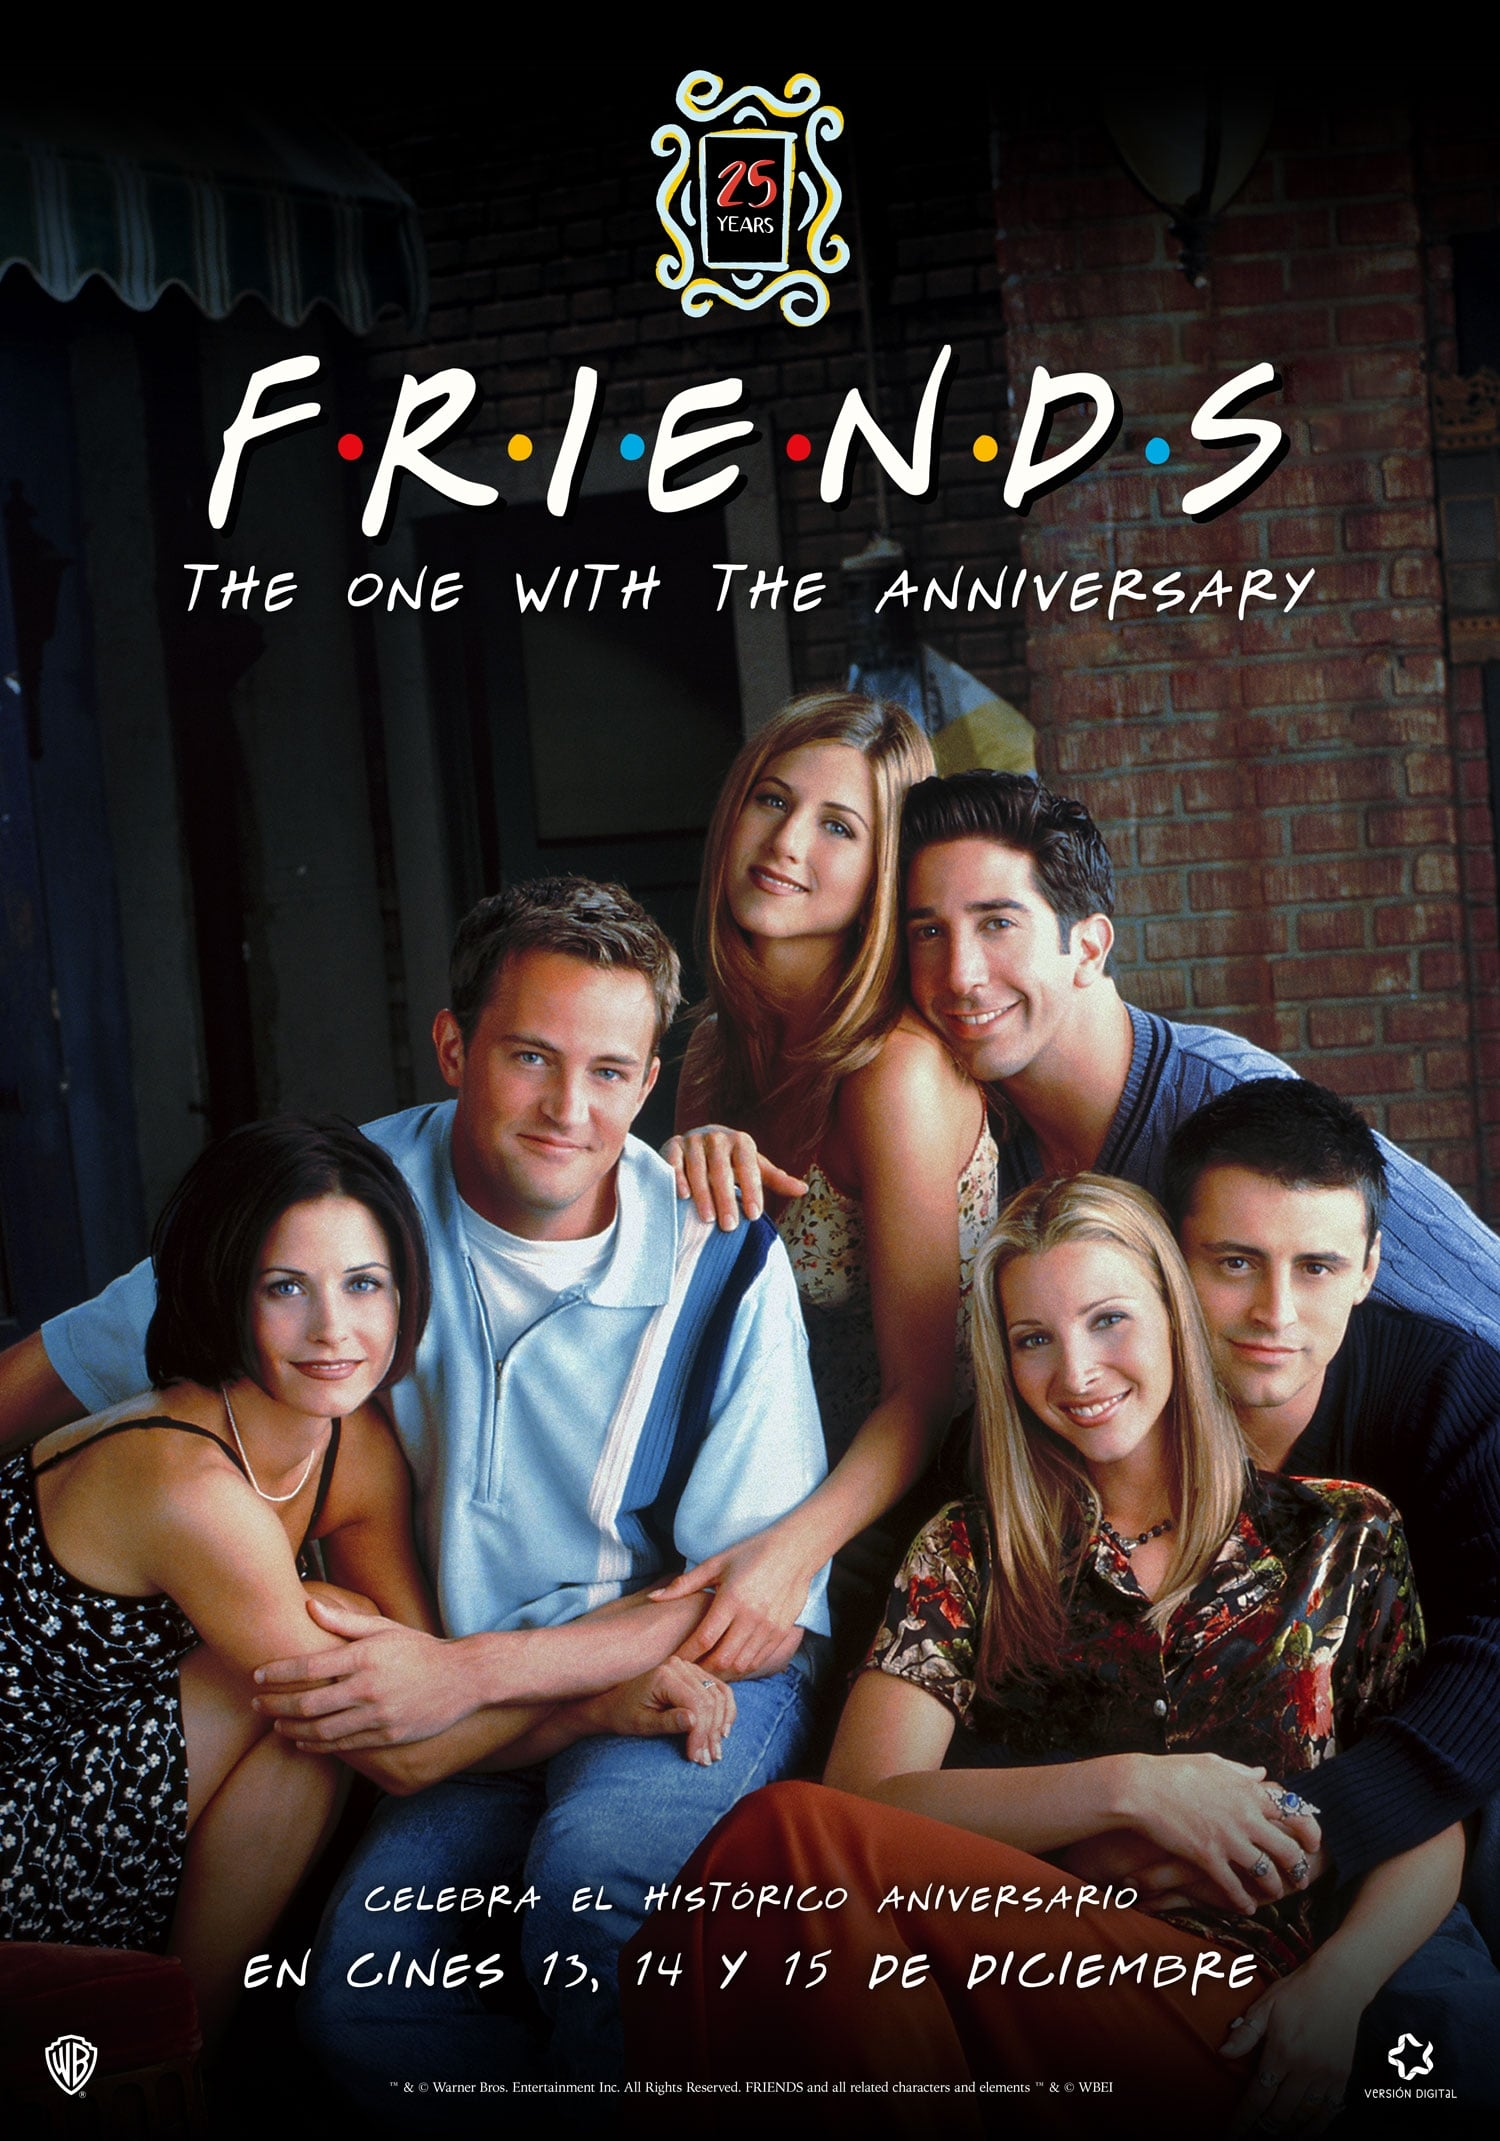 Friends 25th: The One With The Anniversary (2019)